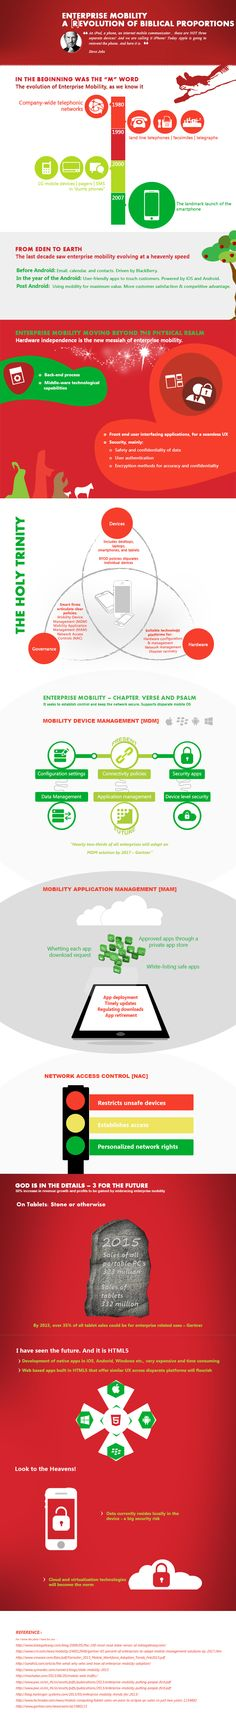 Infographic showcasing the evolution of Enterprise Mobility